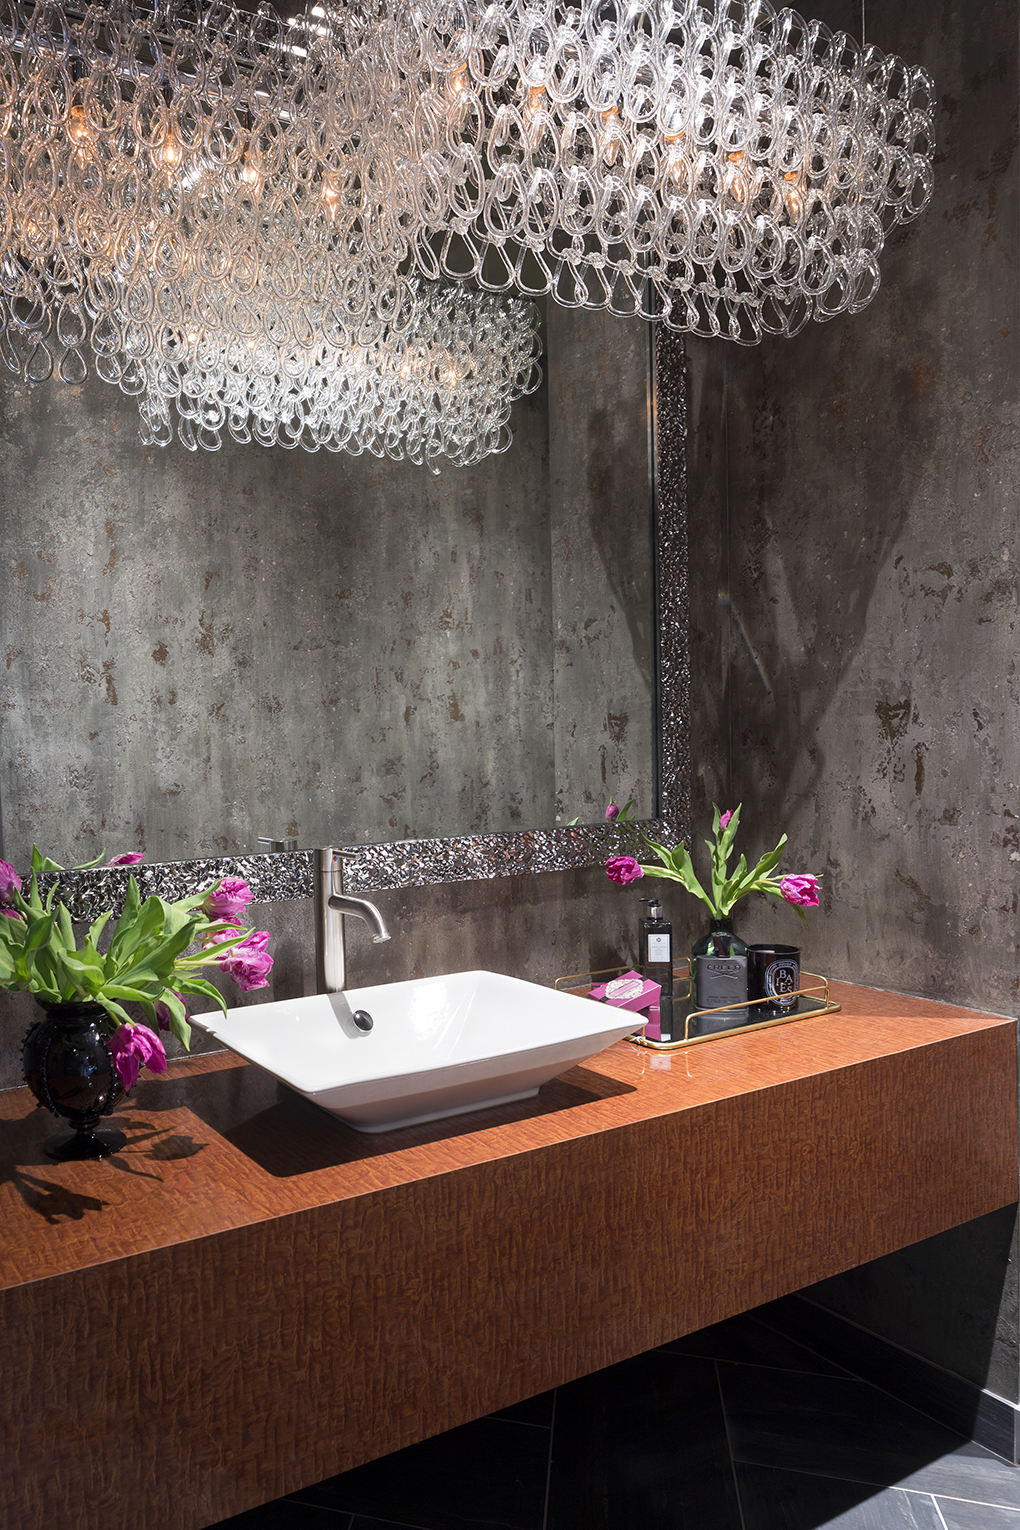 An elegant powder room with dark walls, large mirror, and white sink flanked by pink flowers in vases.